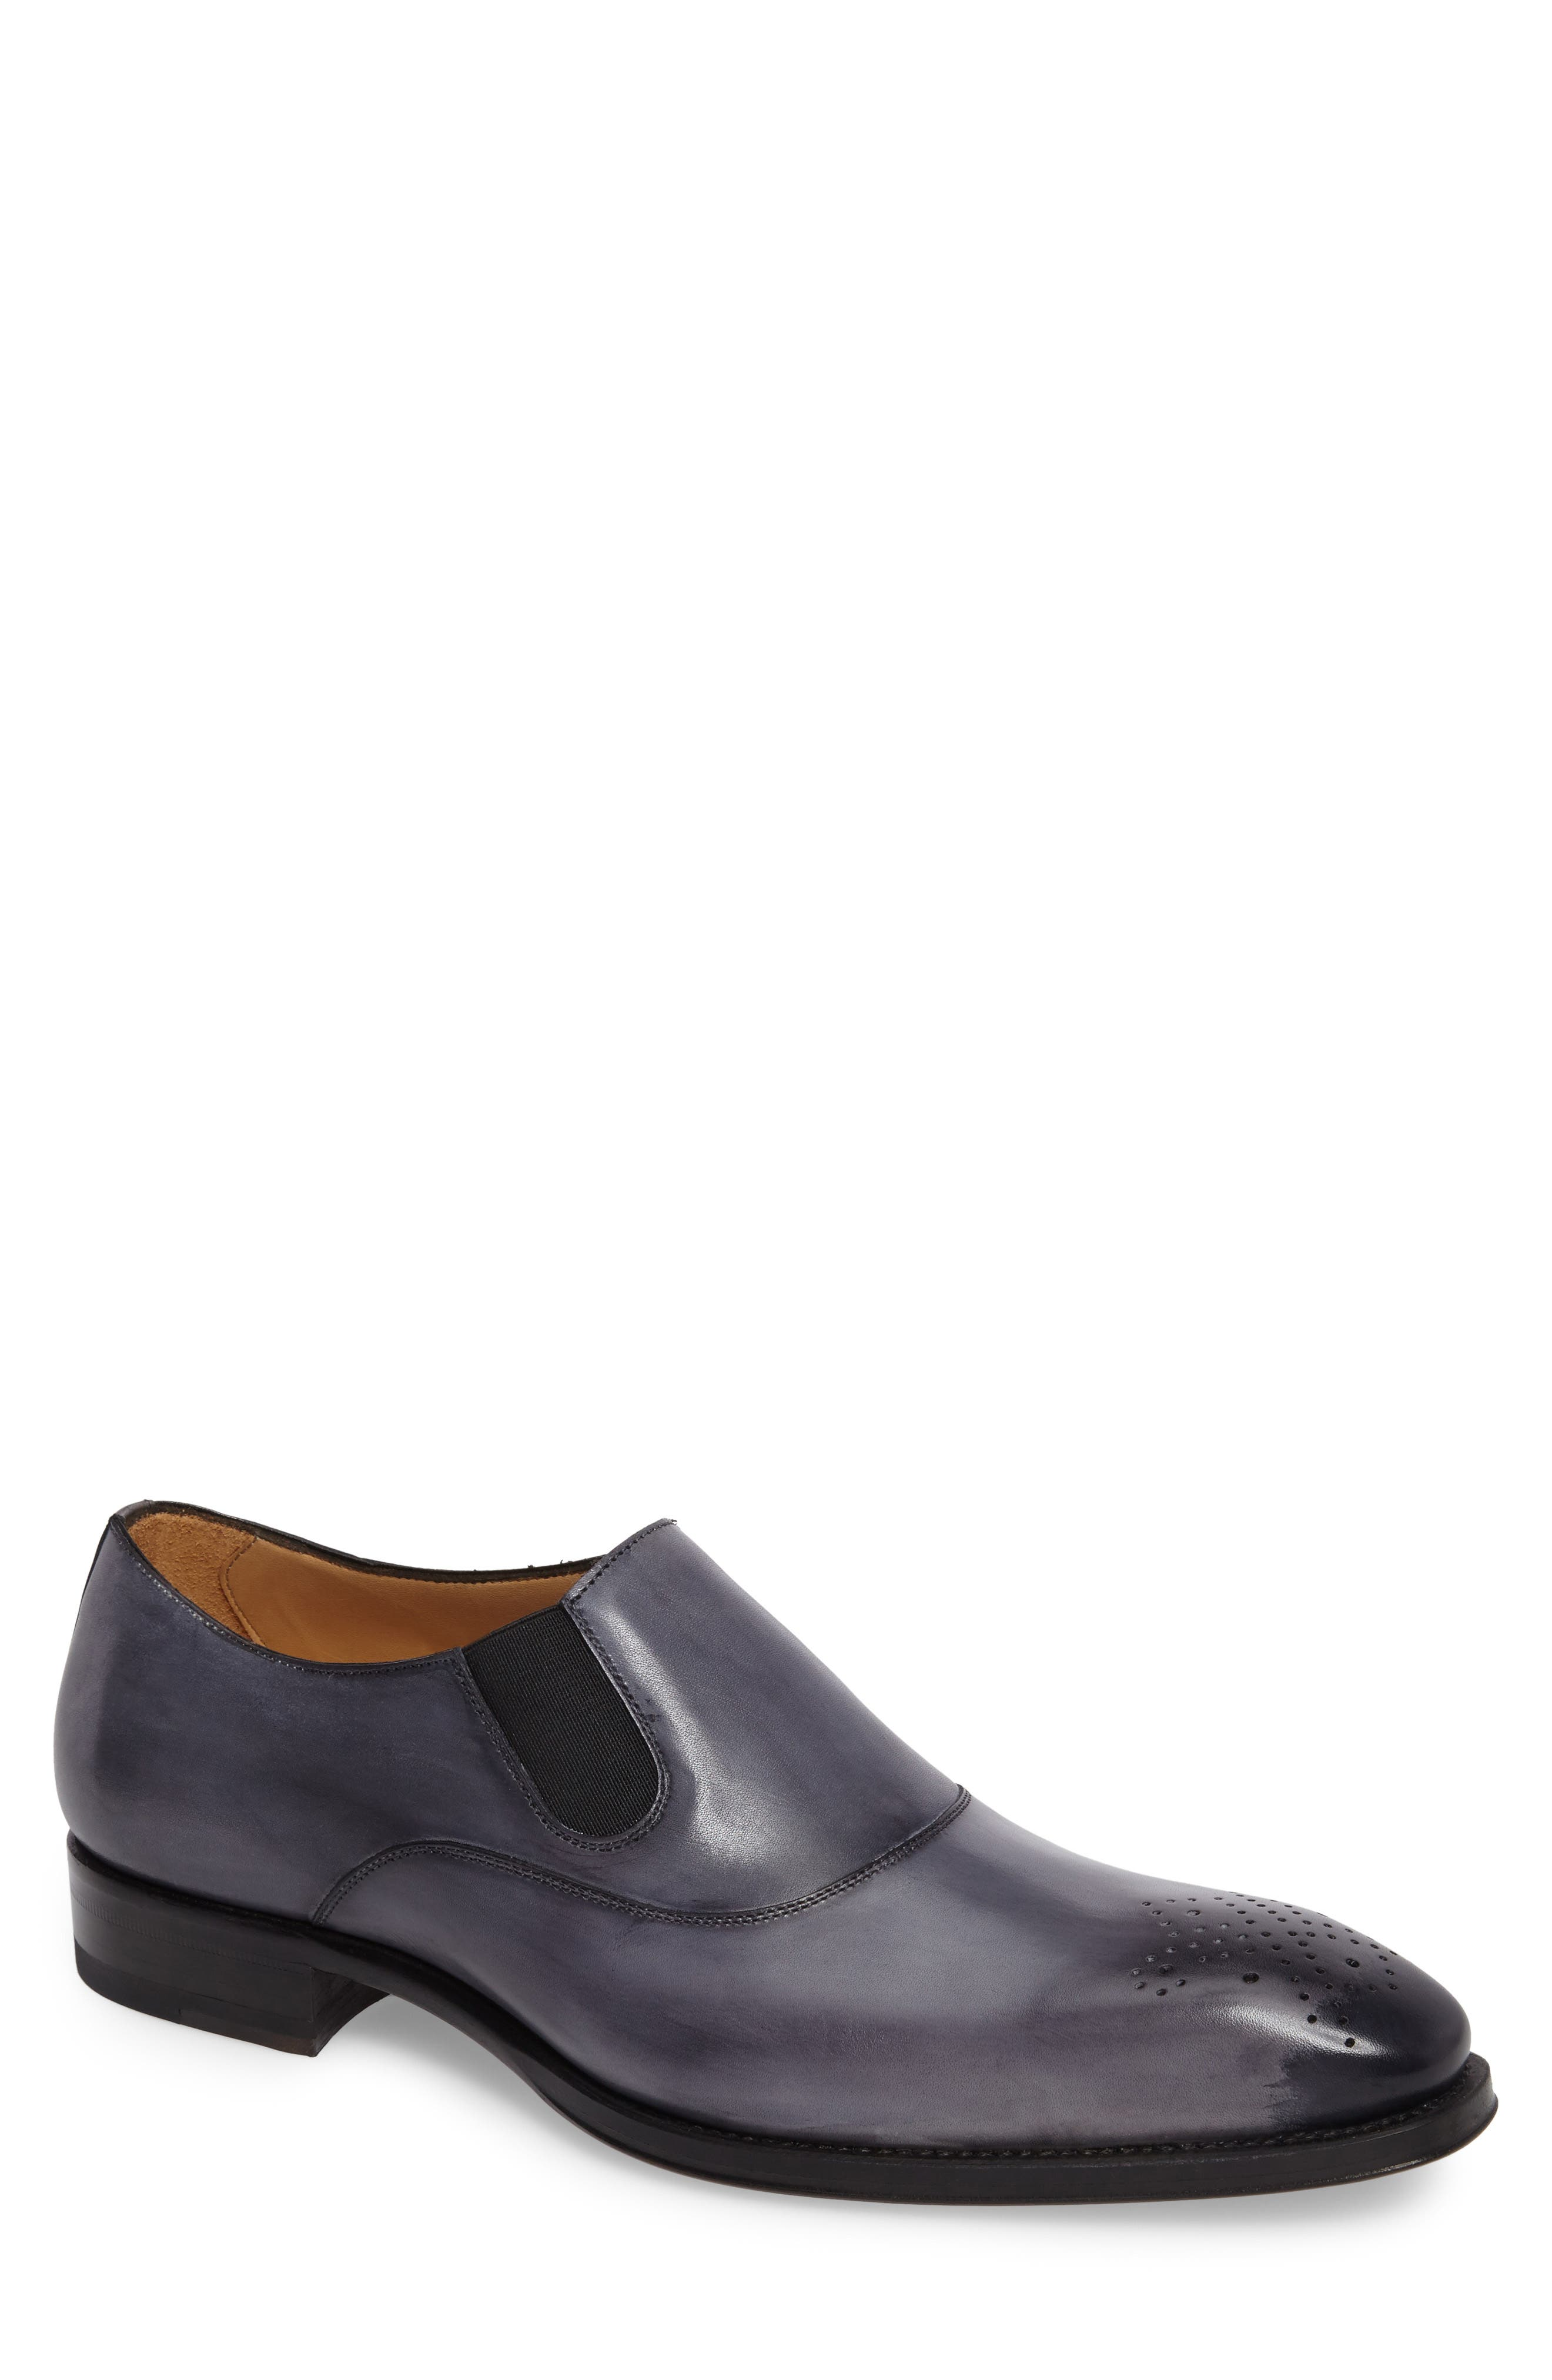 Posadas Venetian Loafer,                         Main,                         color, Grey Leather